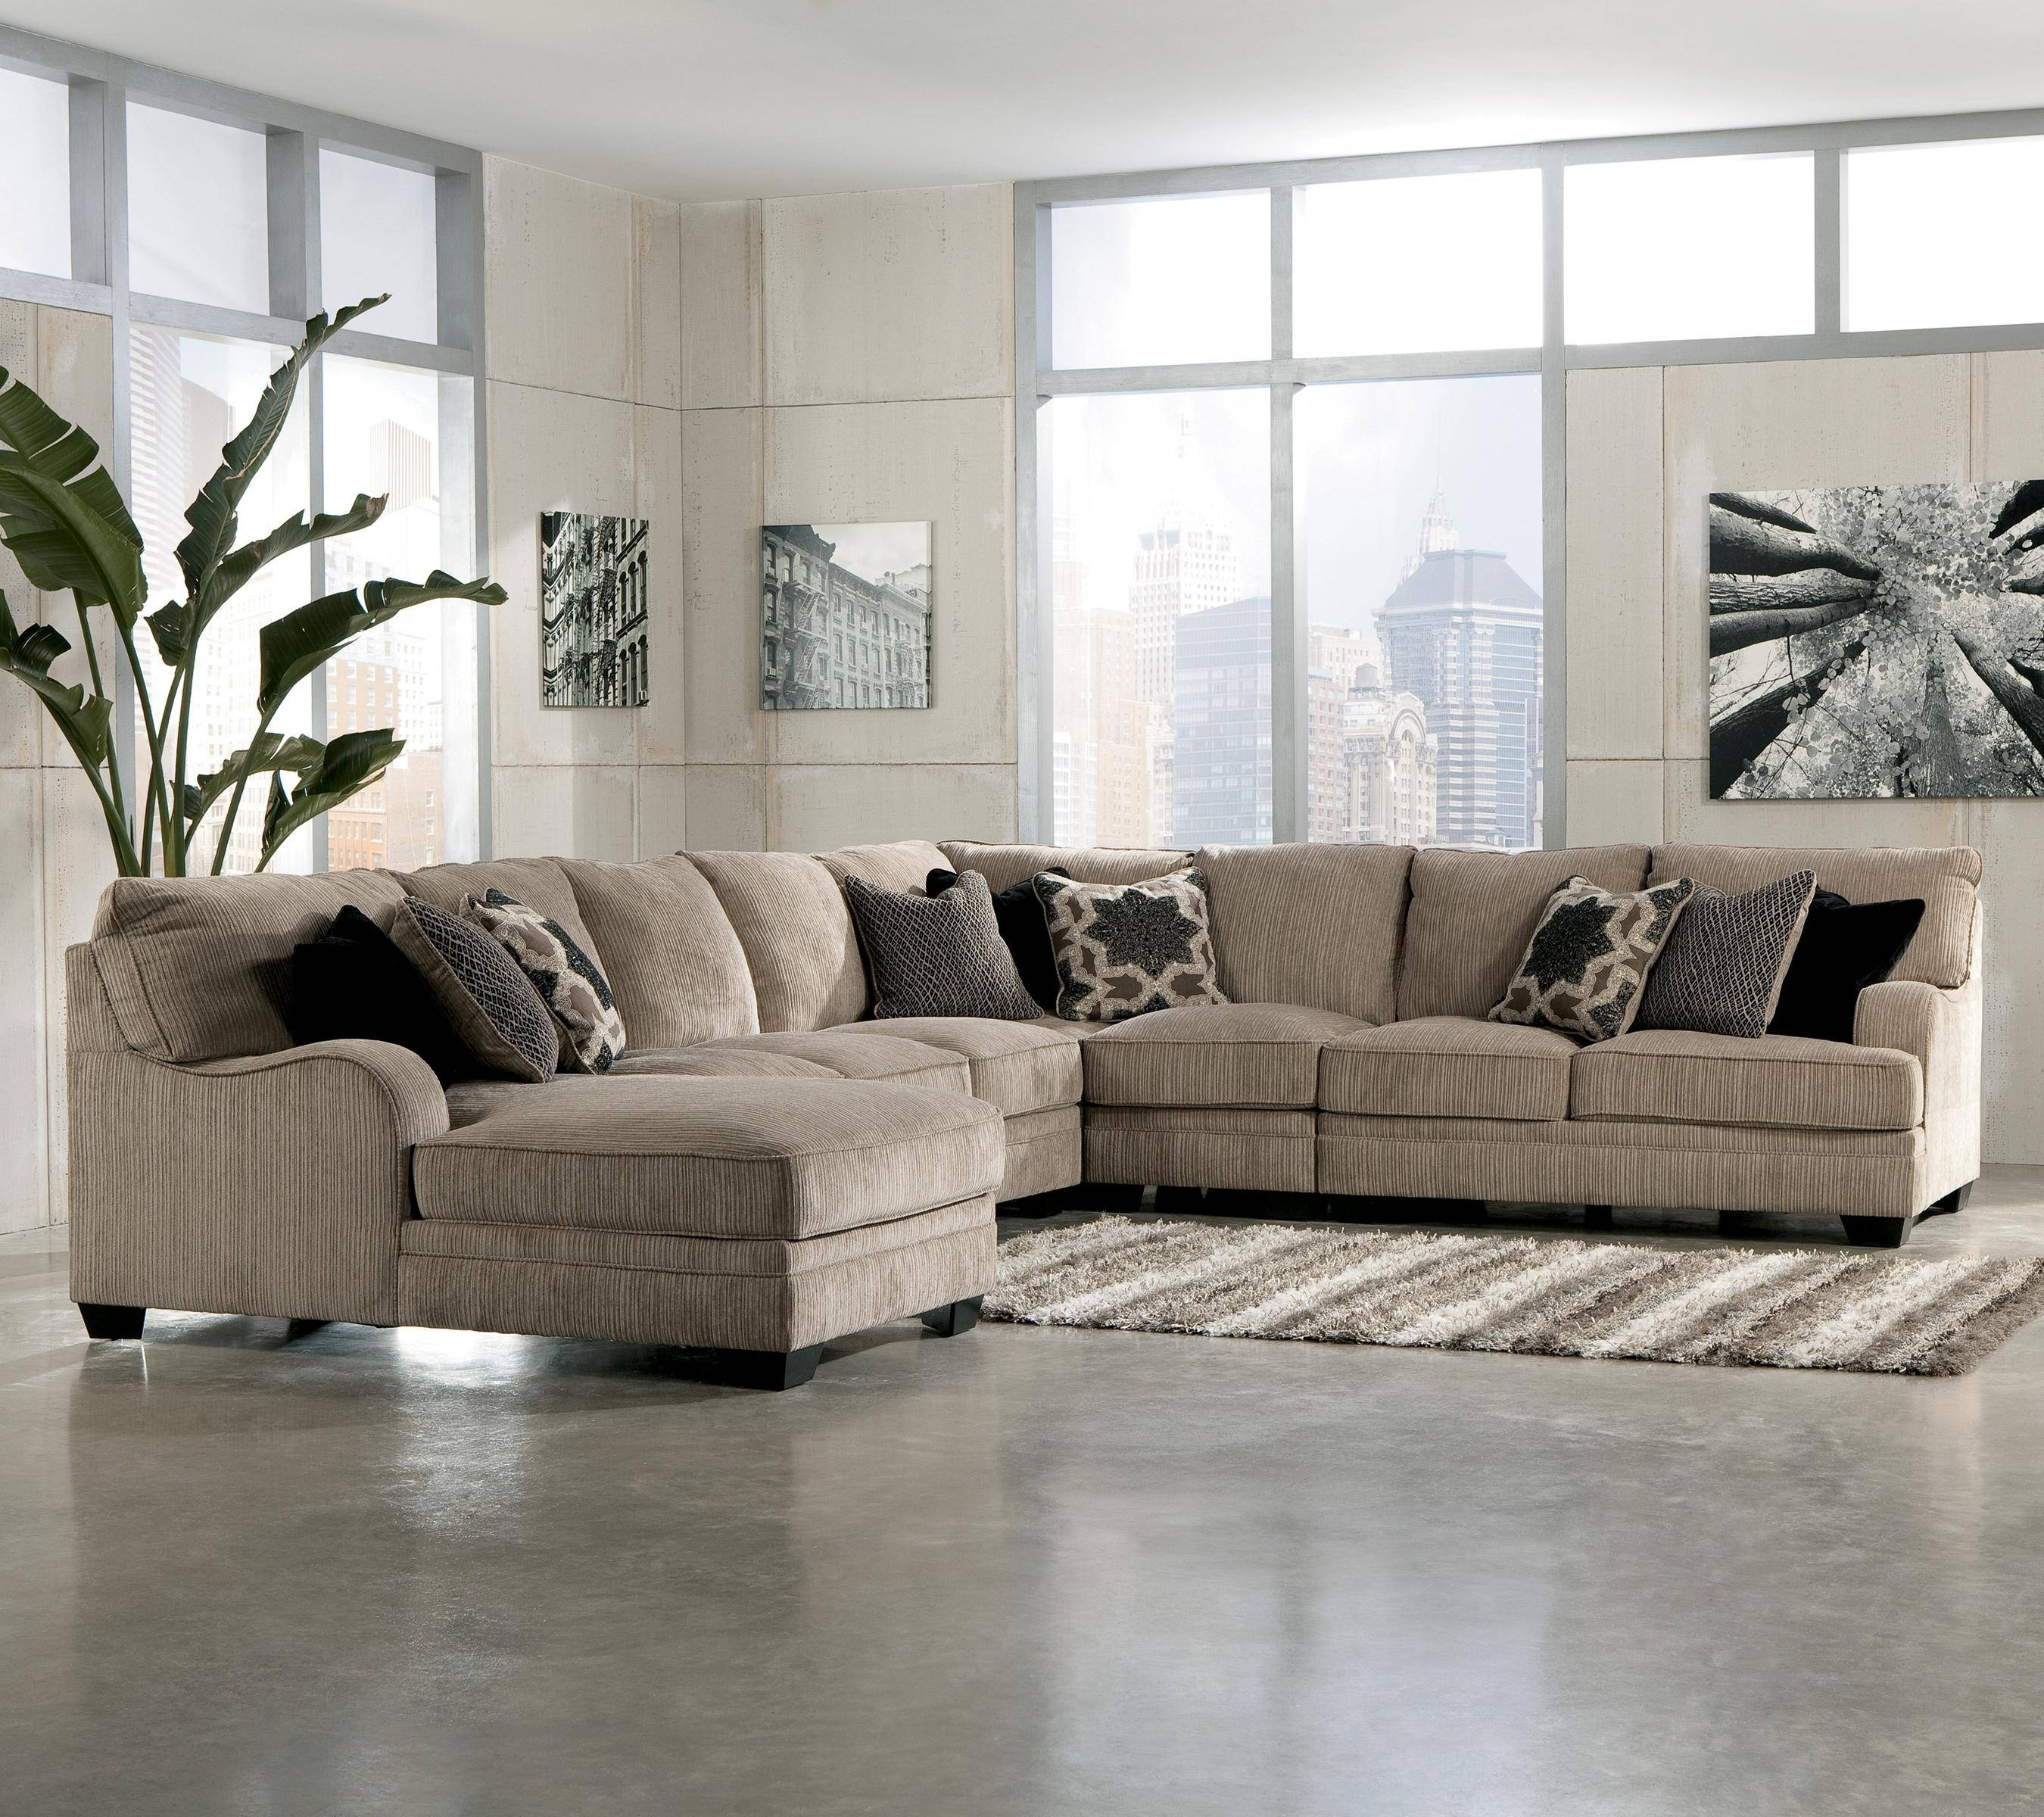 Sectional Sofa In Huntsville Al: 15 Inspirations Of Richmond Sectional Sofas